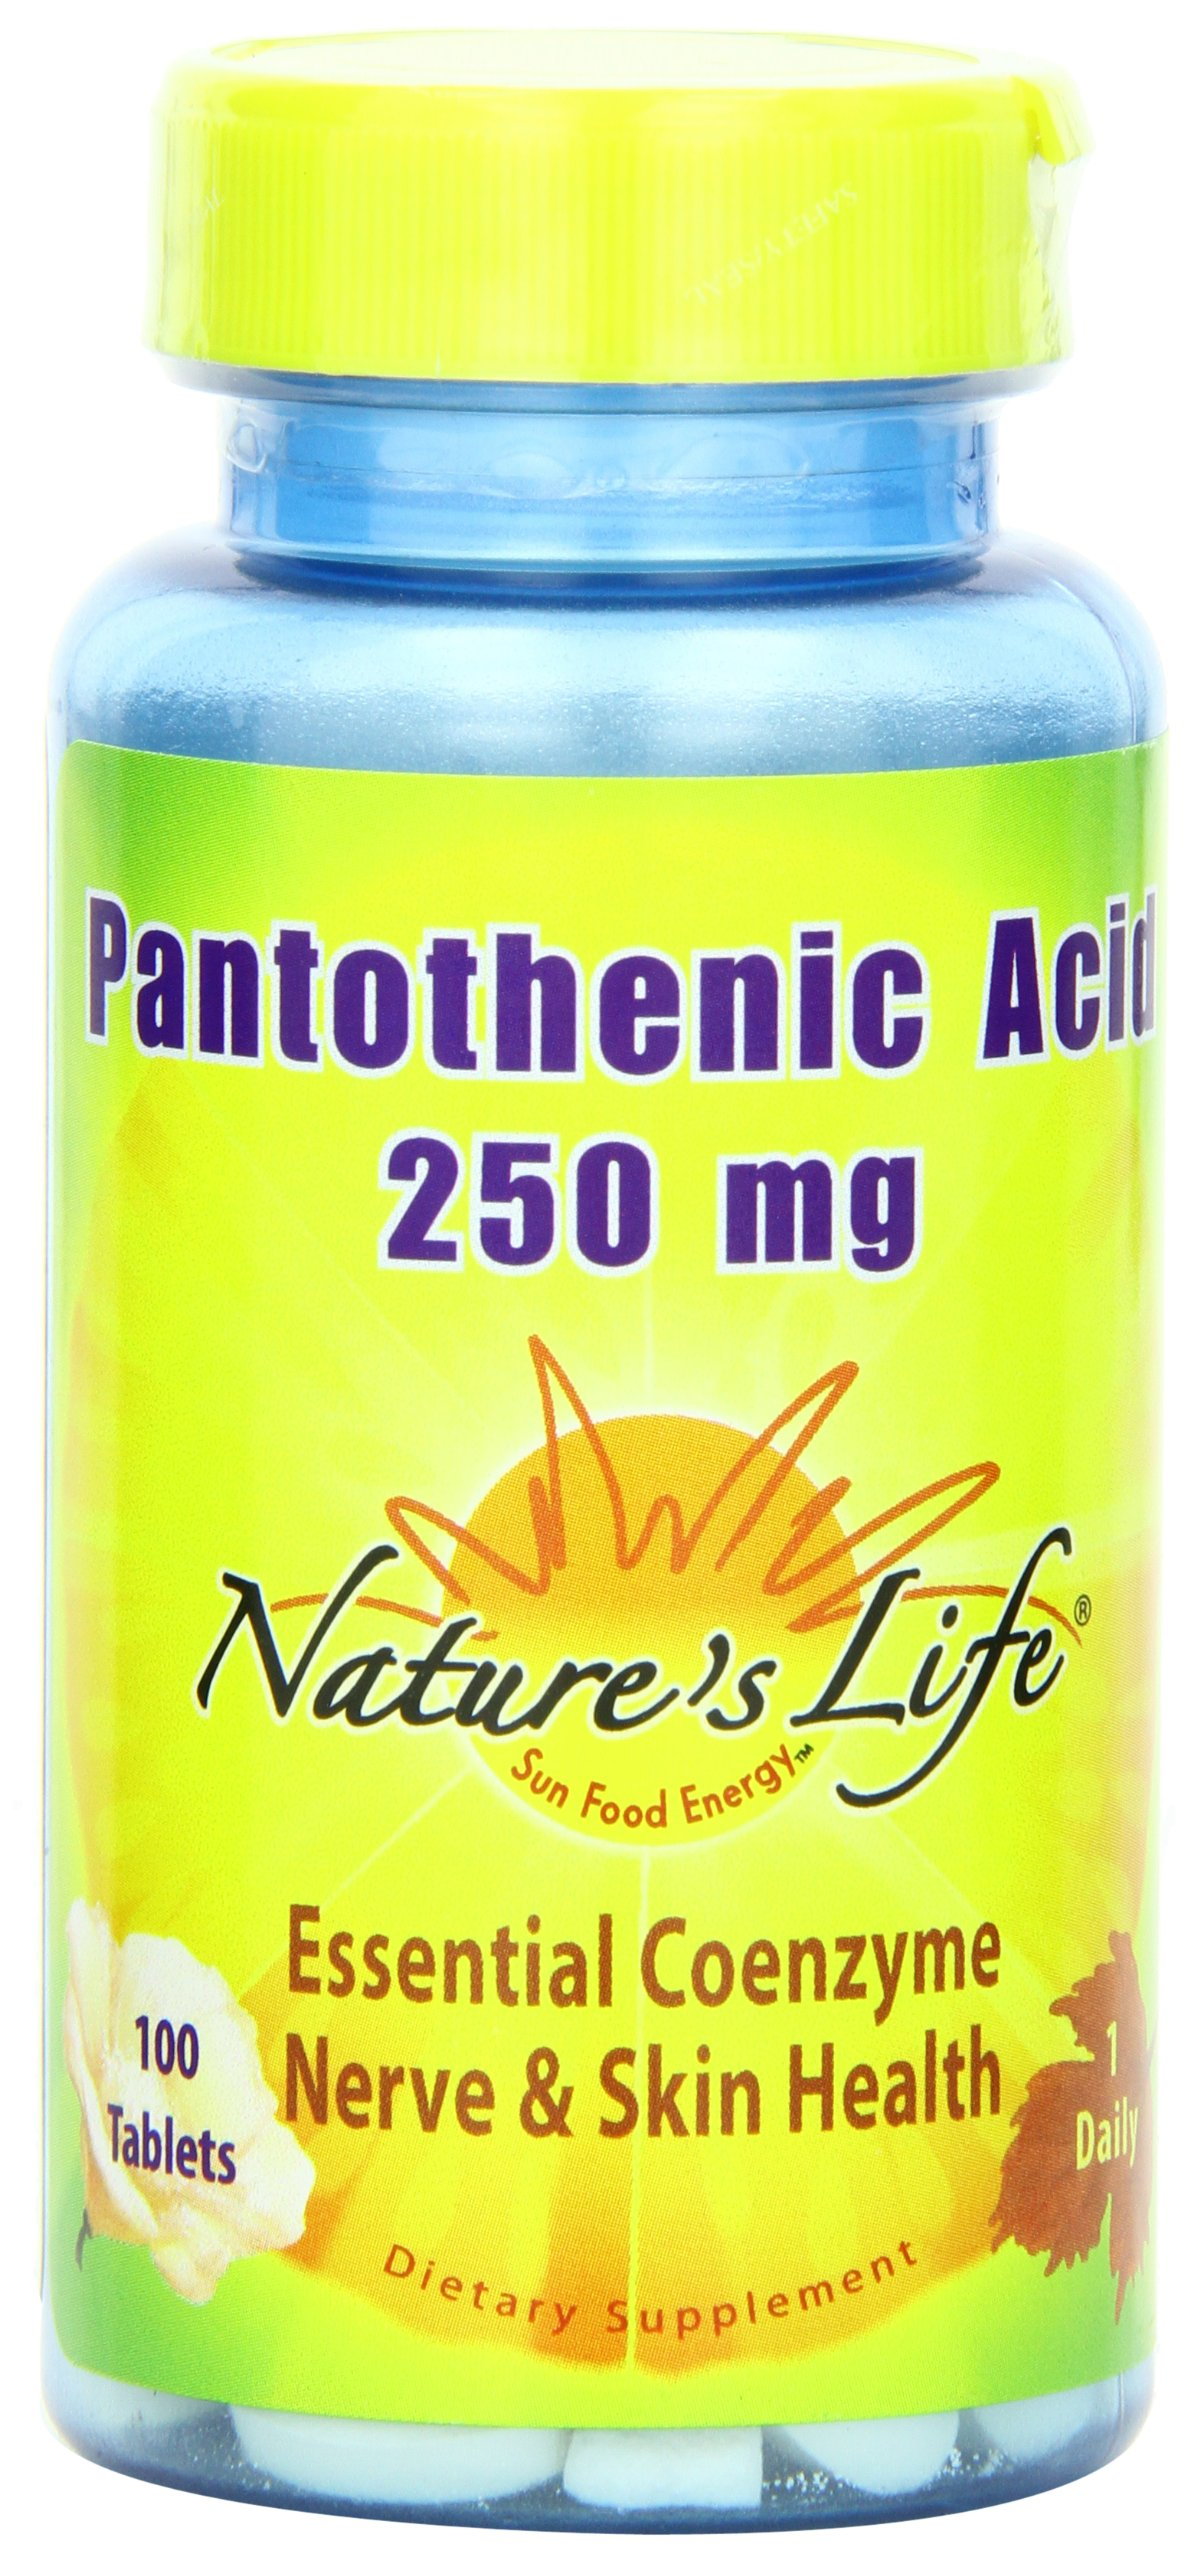 Nature's Life Pantothenic Acid Tablets, 250 Mg, 100 Count (Pack of 2)